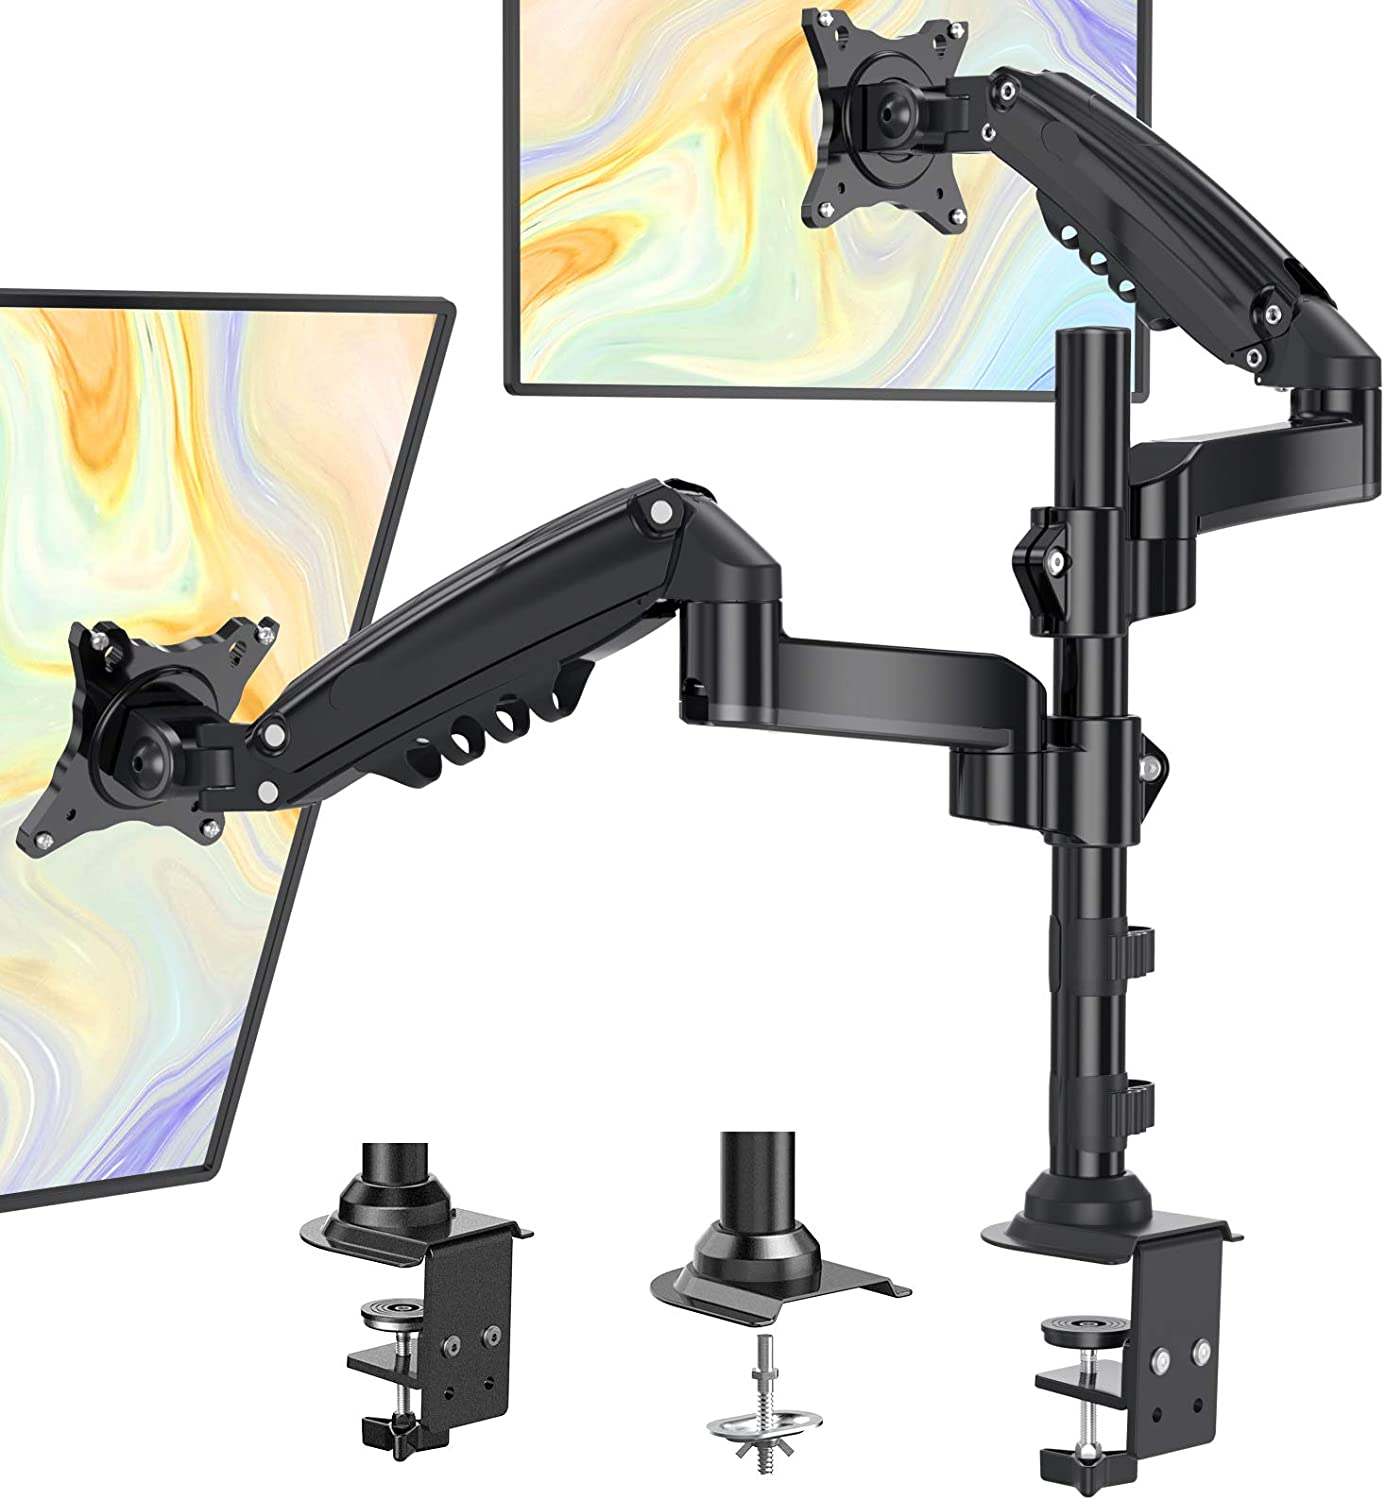 ErGear Dual Monitor Mount for Most 17-34 Inch Screens, Adjustable Gas Spring Arm Monitor Desk Mount Stand, VESA Mount 75/100mm with C Clamp, Grommet Mounting for Flat Curved Monitors up to 19.8lbs